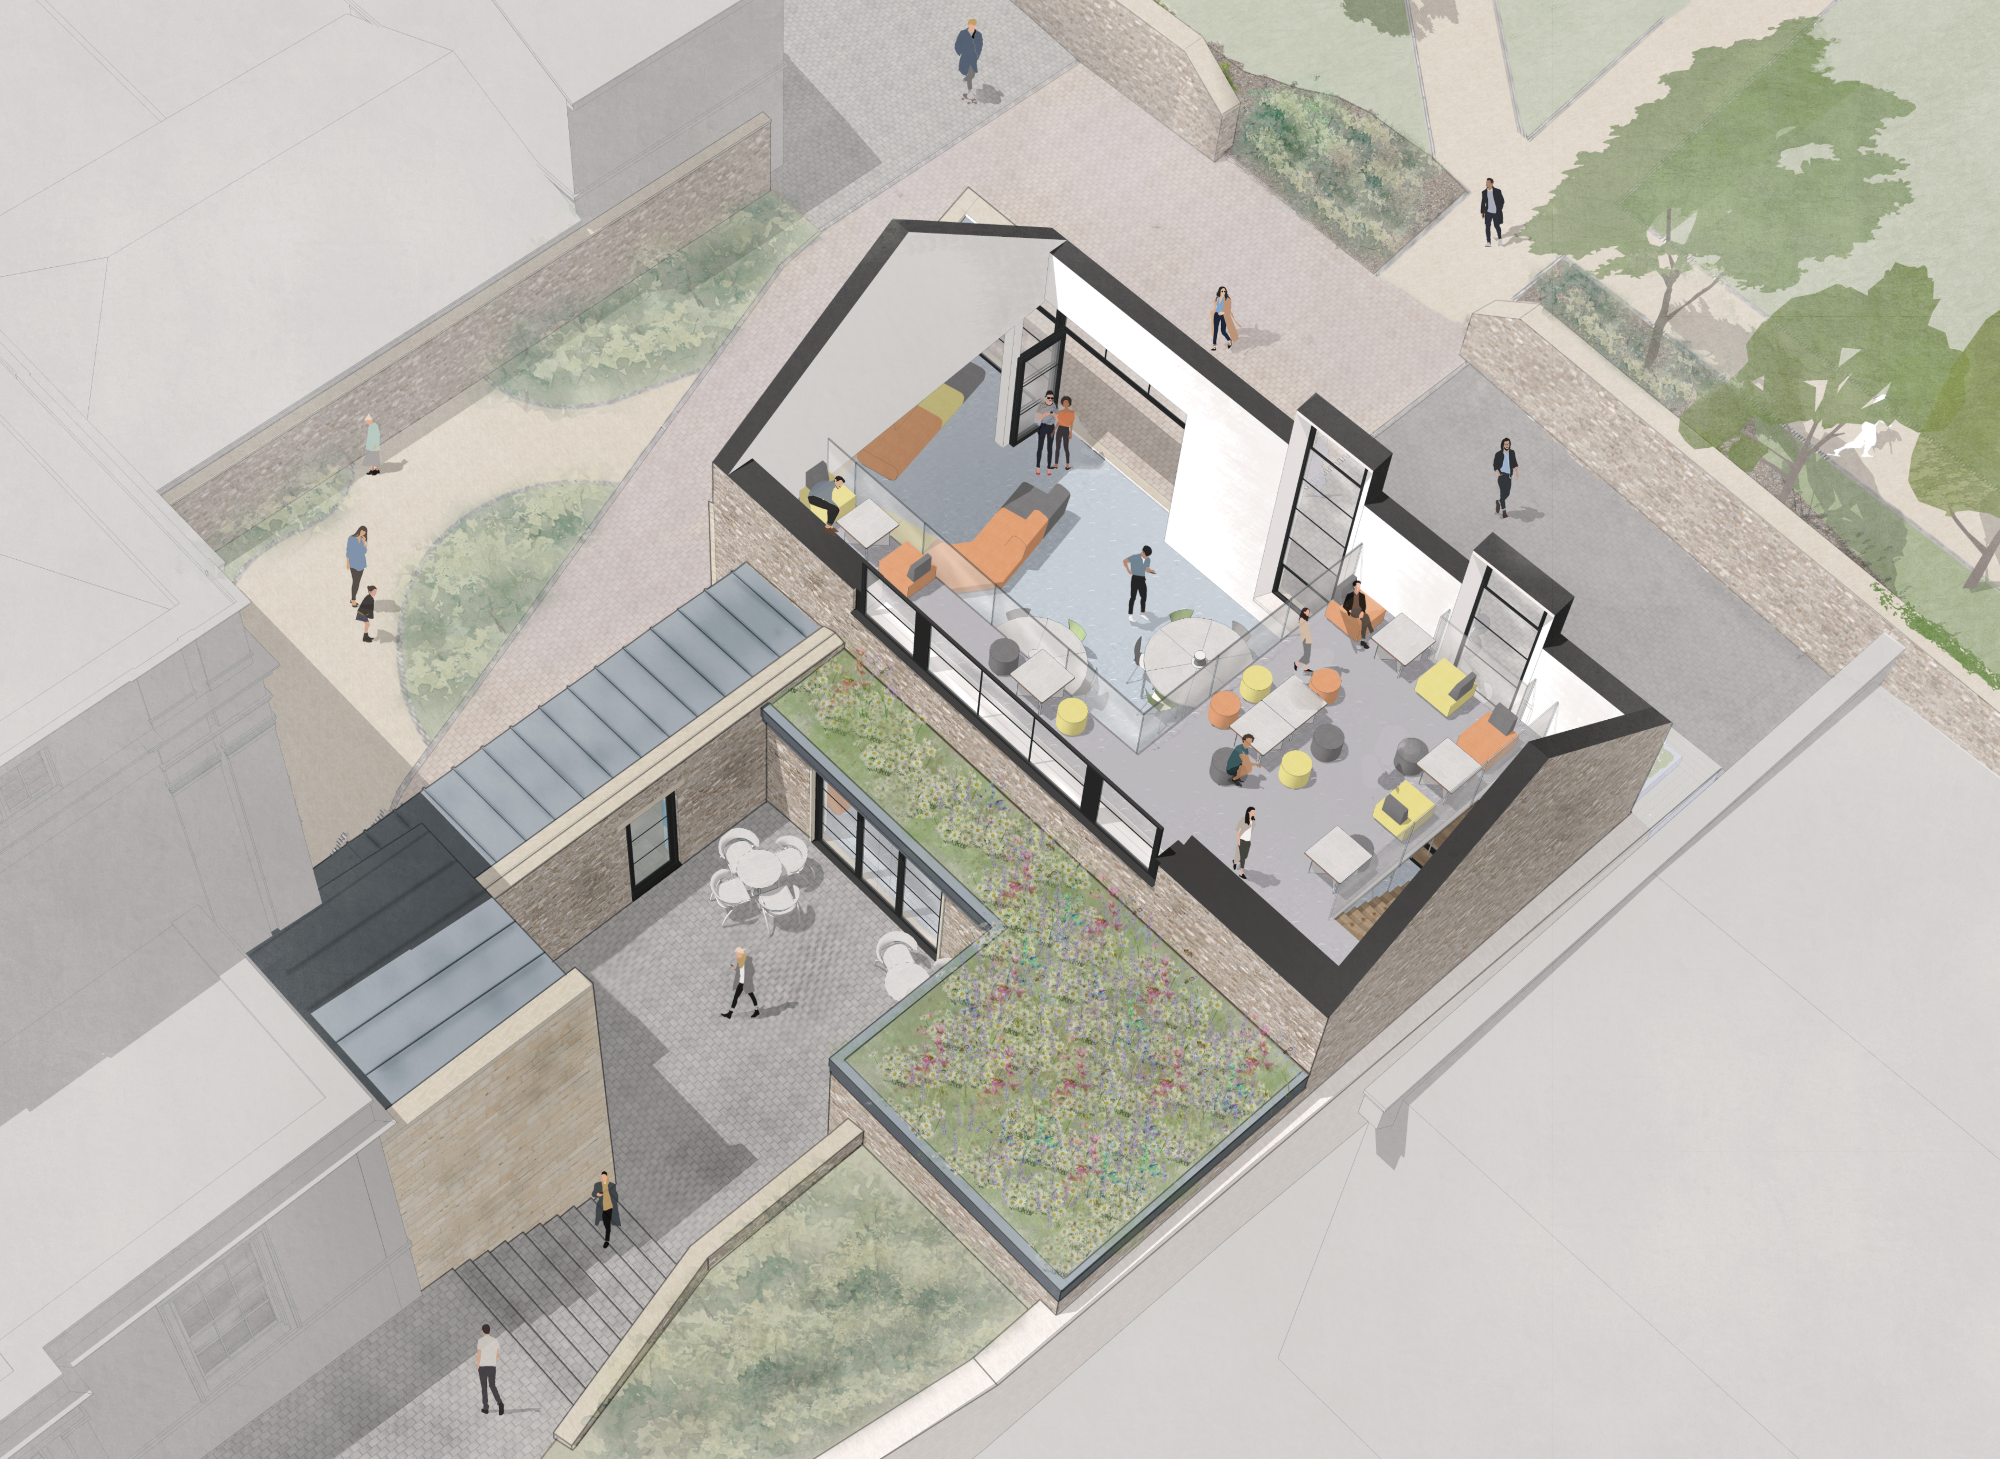 New Sixth Form Building for Clifton High School